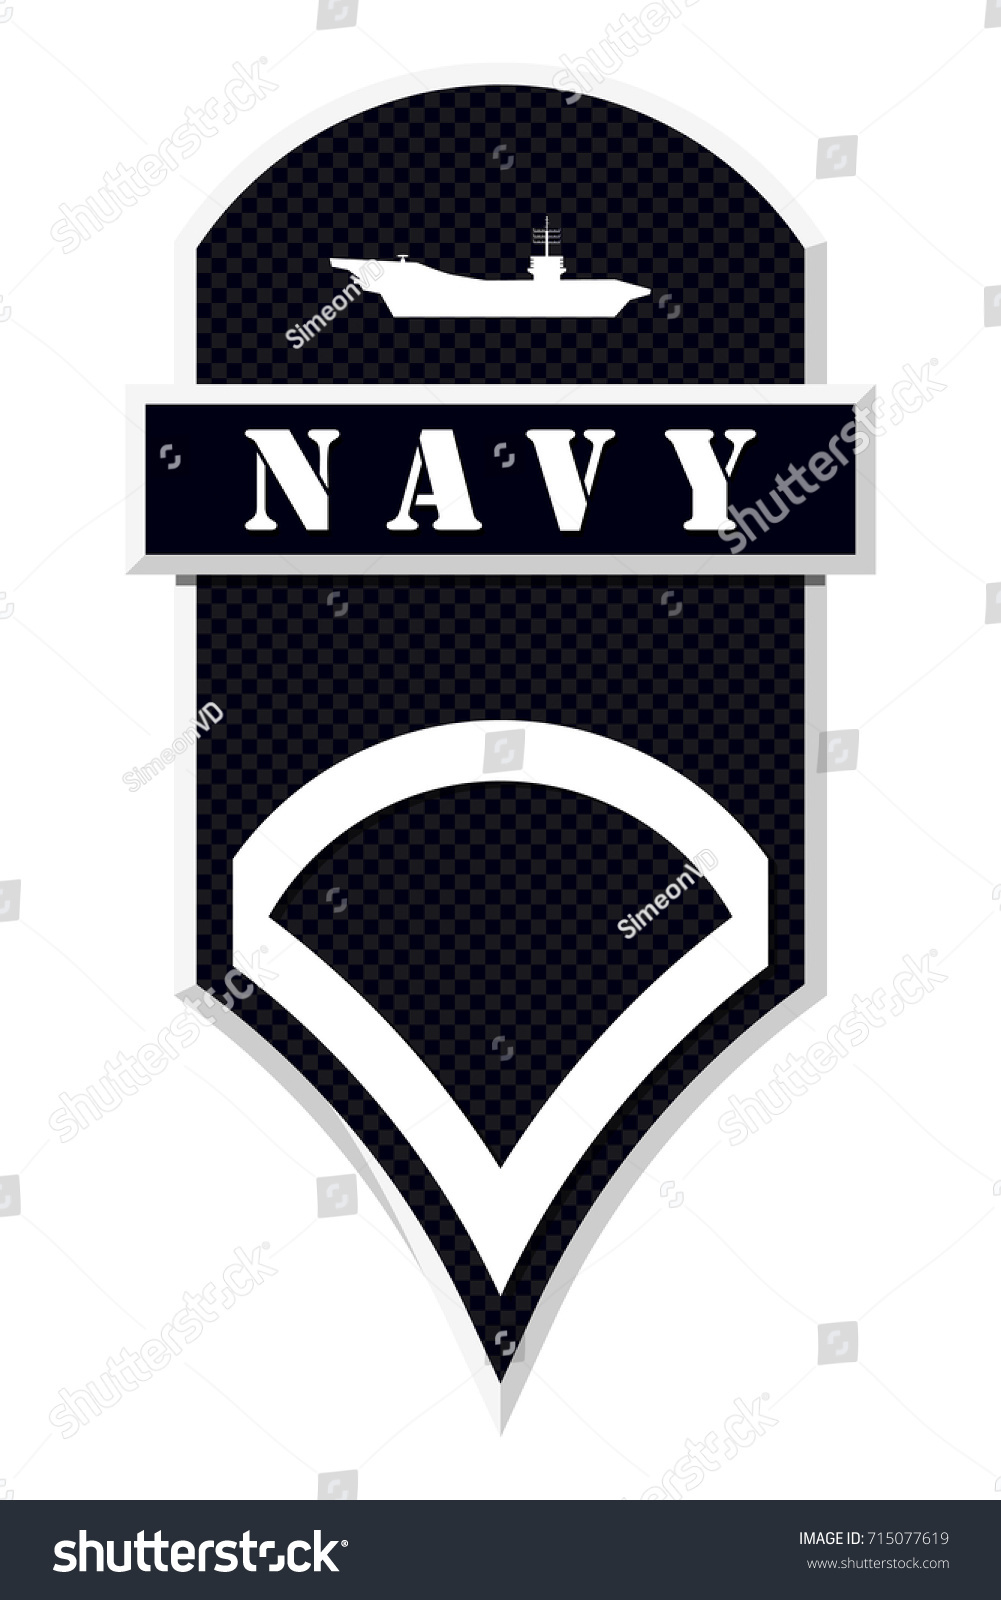 Military ranks insignia stripes chevrons army stock vector 715077619 military ranks and insignia stripes and chevrons of army private first class biocorpaavc Images